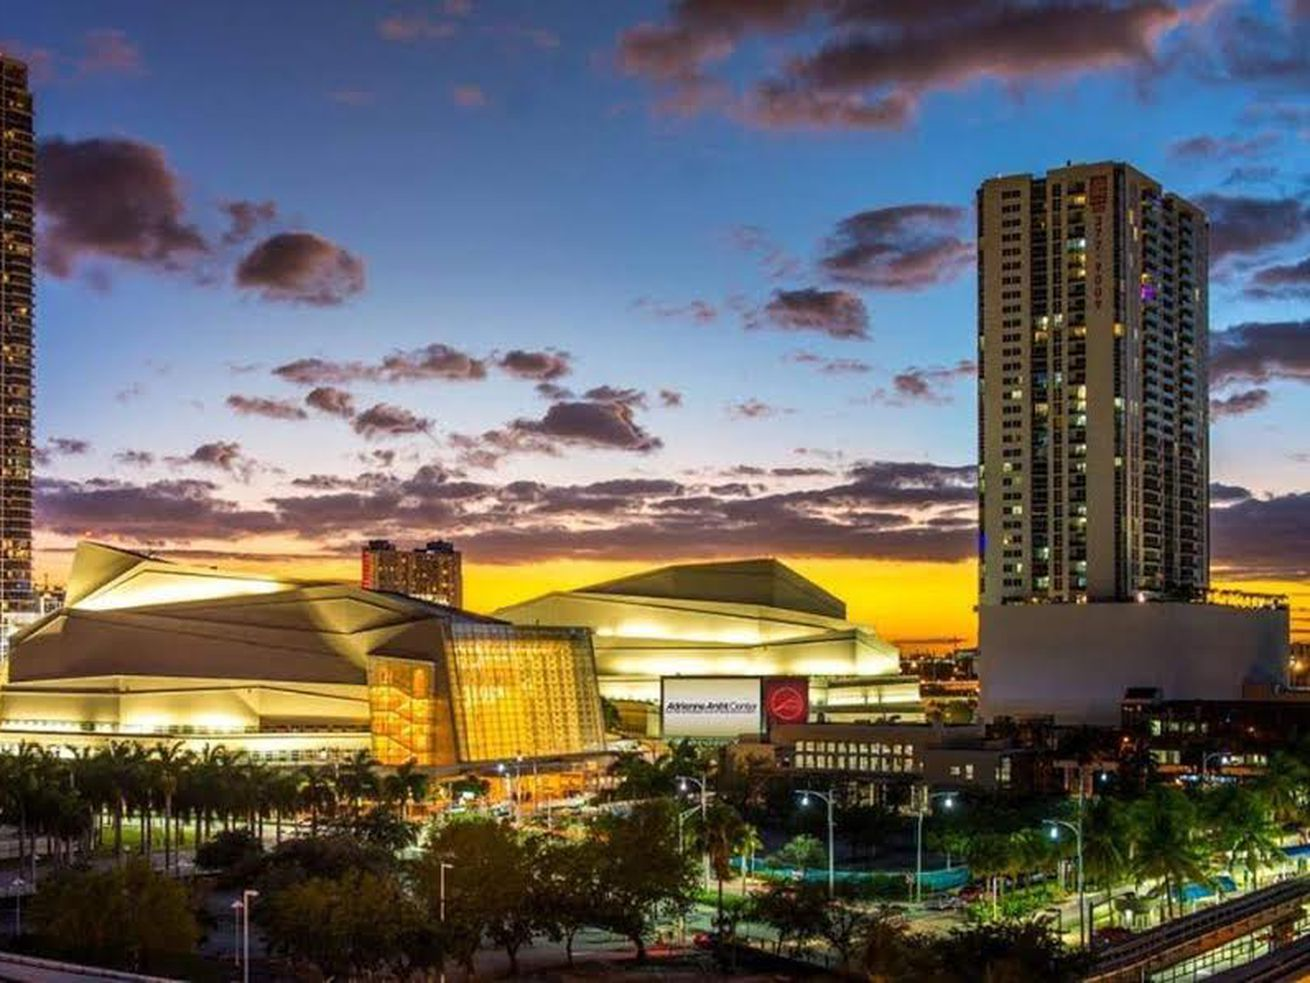 The first Democratic presidential debates will be held June 26 and 27 at the Adrienne Arsht Center for the Performing Arts of Miami-Dade County. CREDIT: Miami Herald/TNS. FILENAME: 19:39 0626mscup-a.jpg.